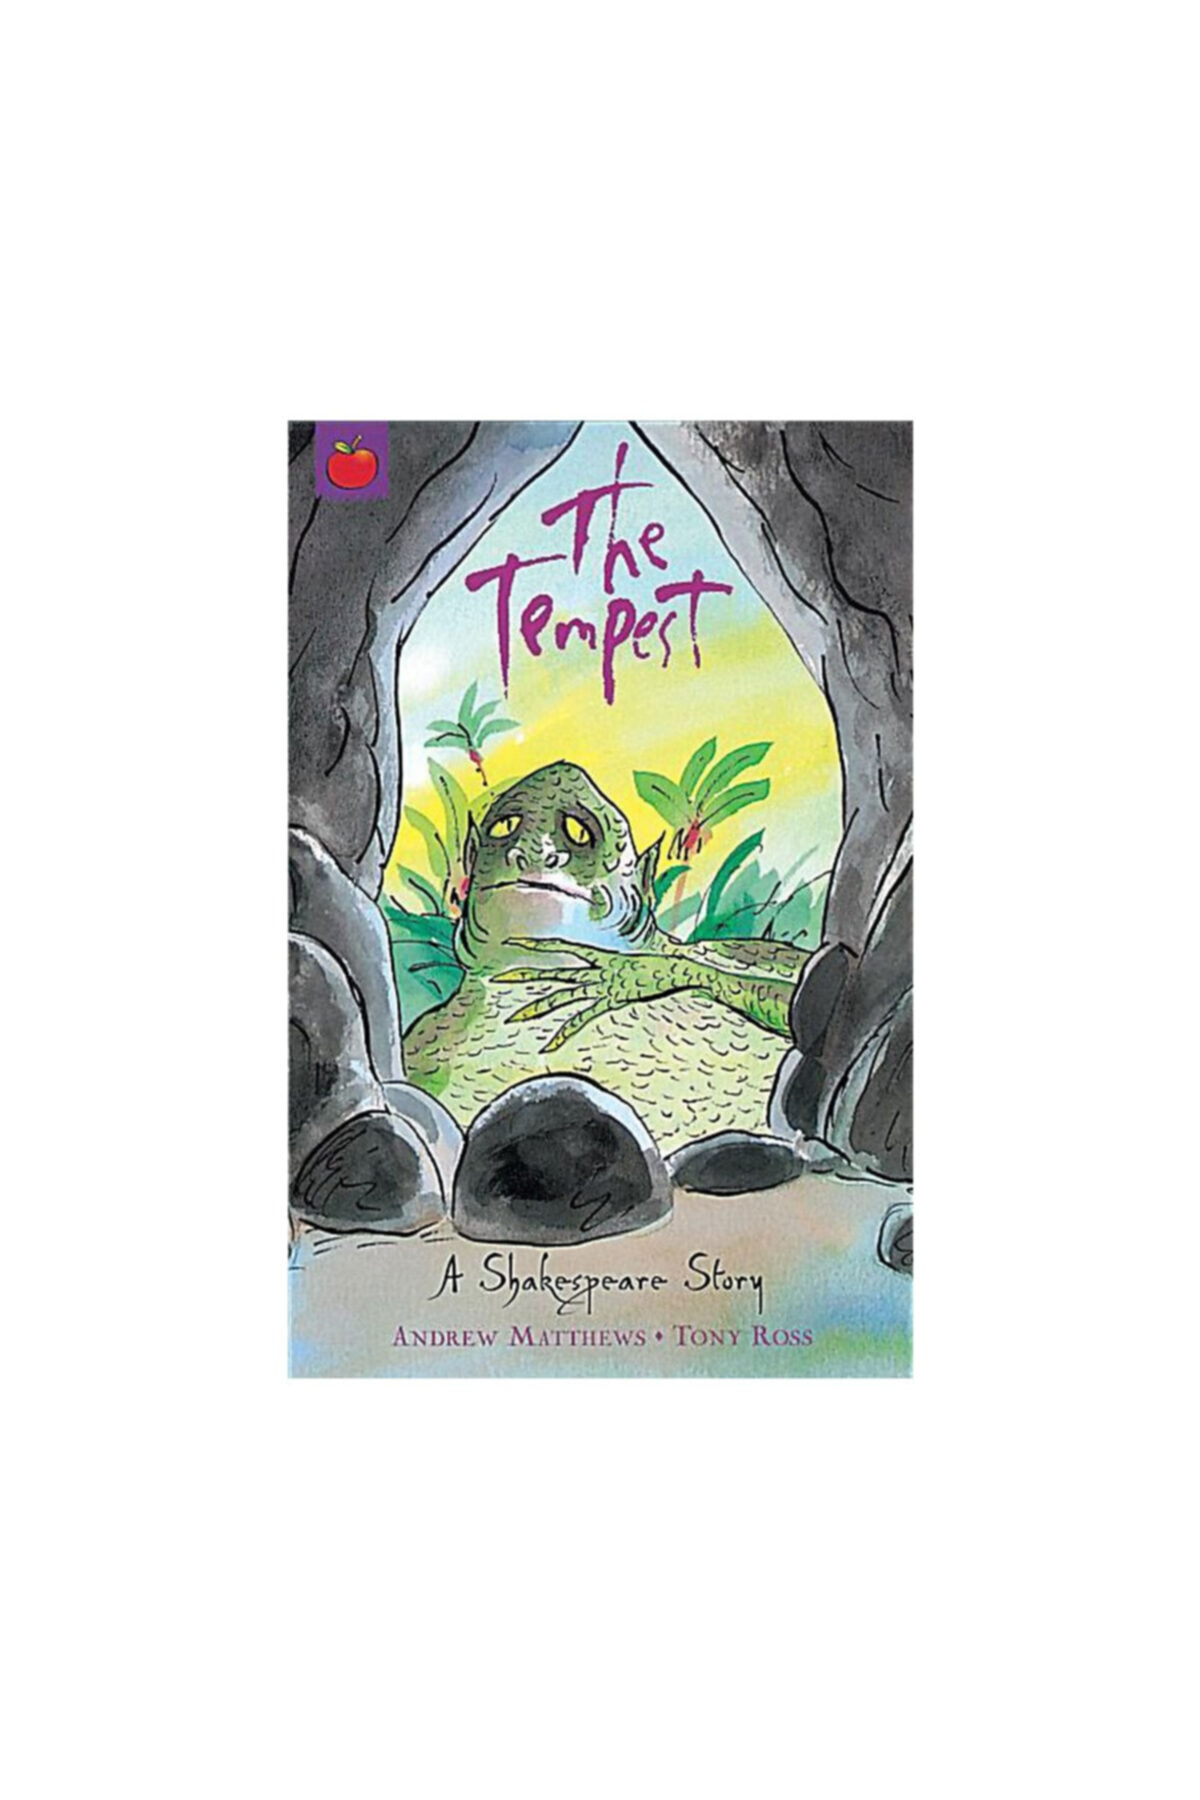 A Shakespeare Story The Tempest Wayland Hachette Children S Group